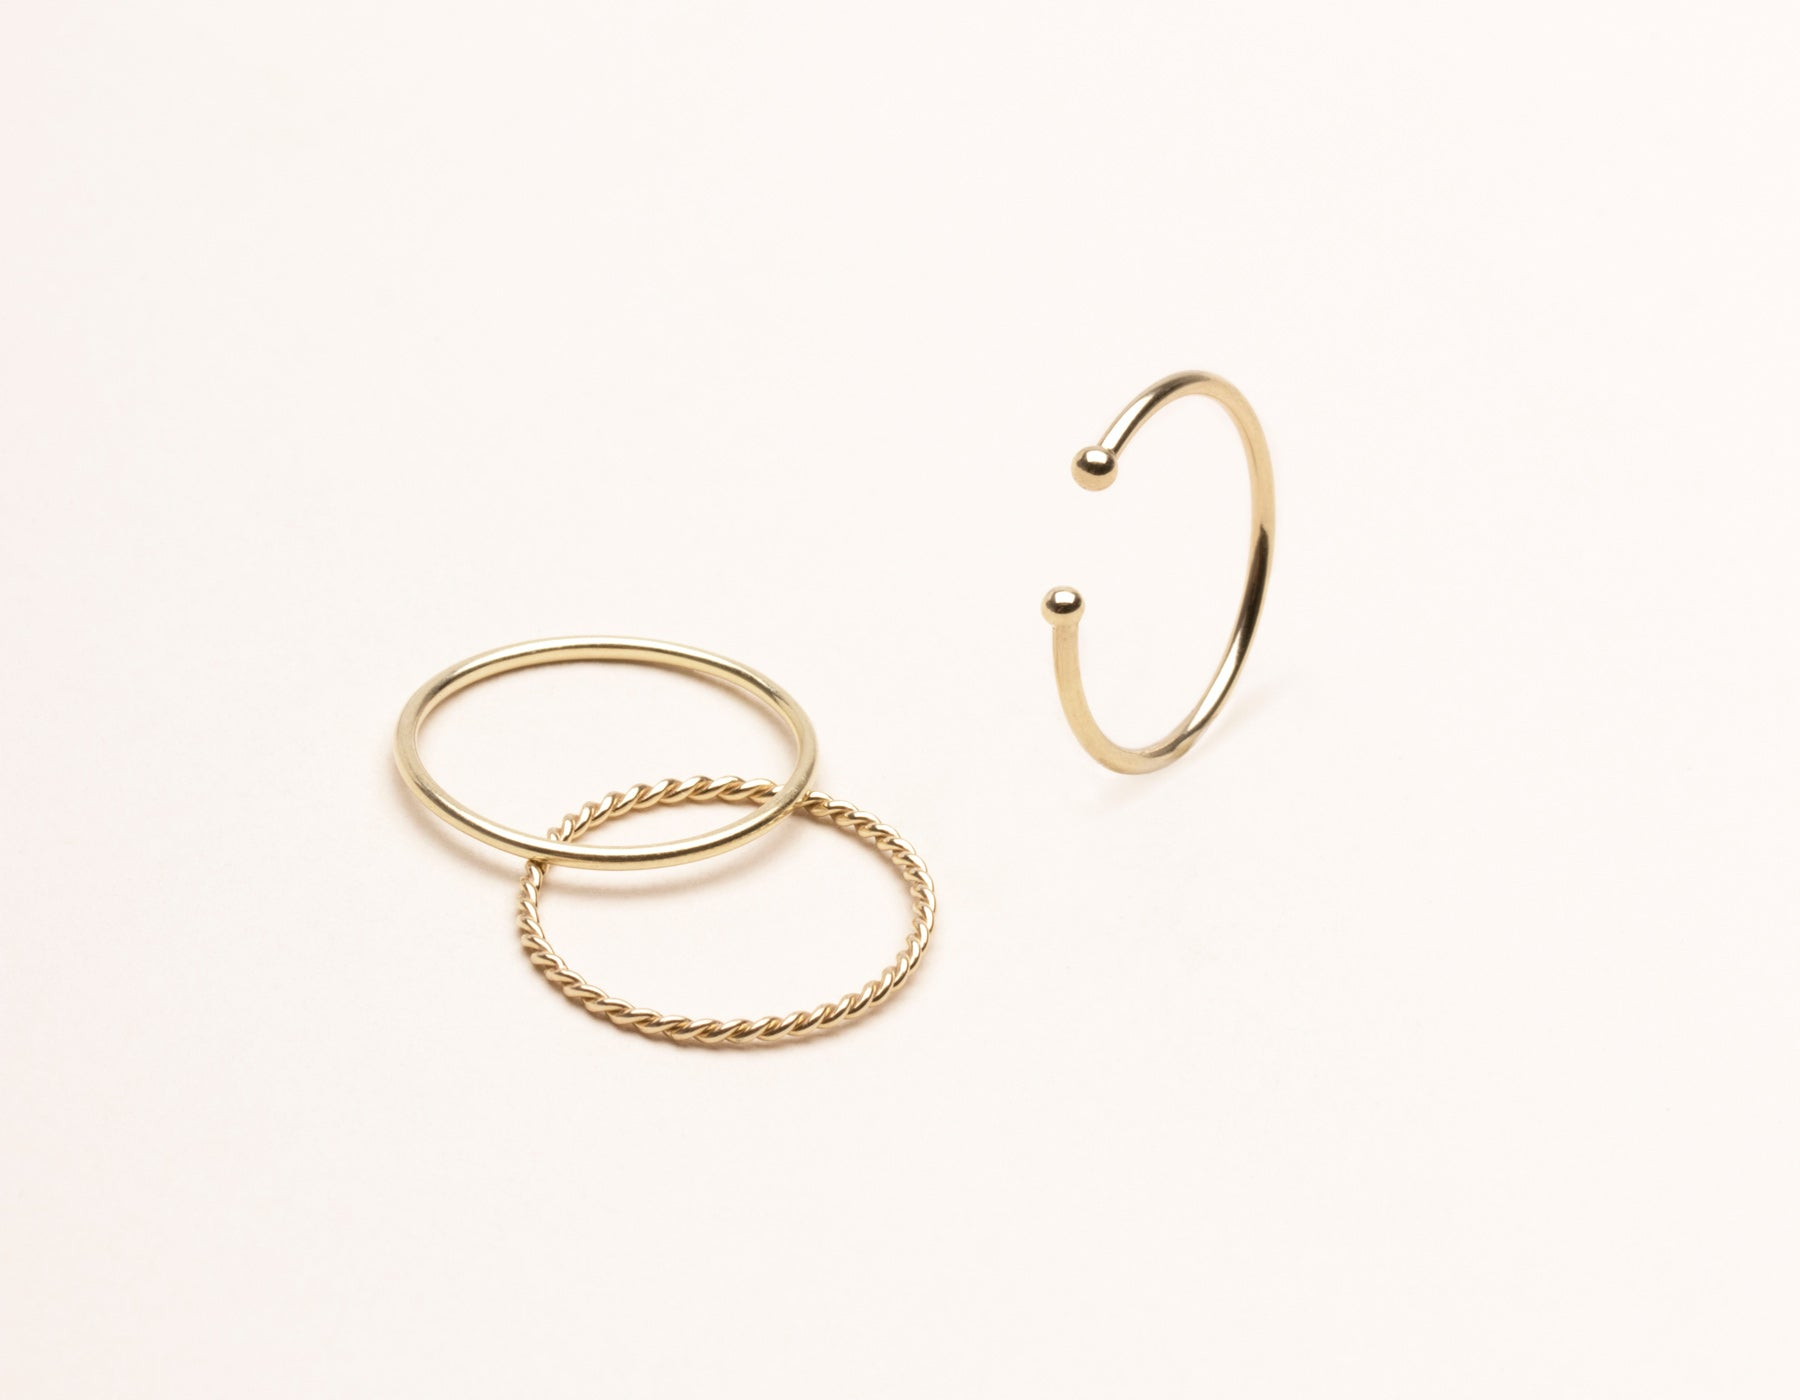 vrai & Oro 14k solid gold modern minimalist simple stack rings, 14K Yellow Gold